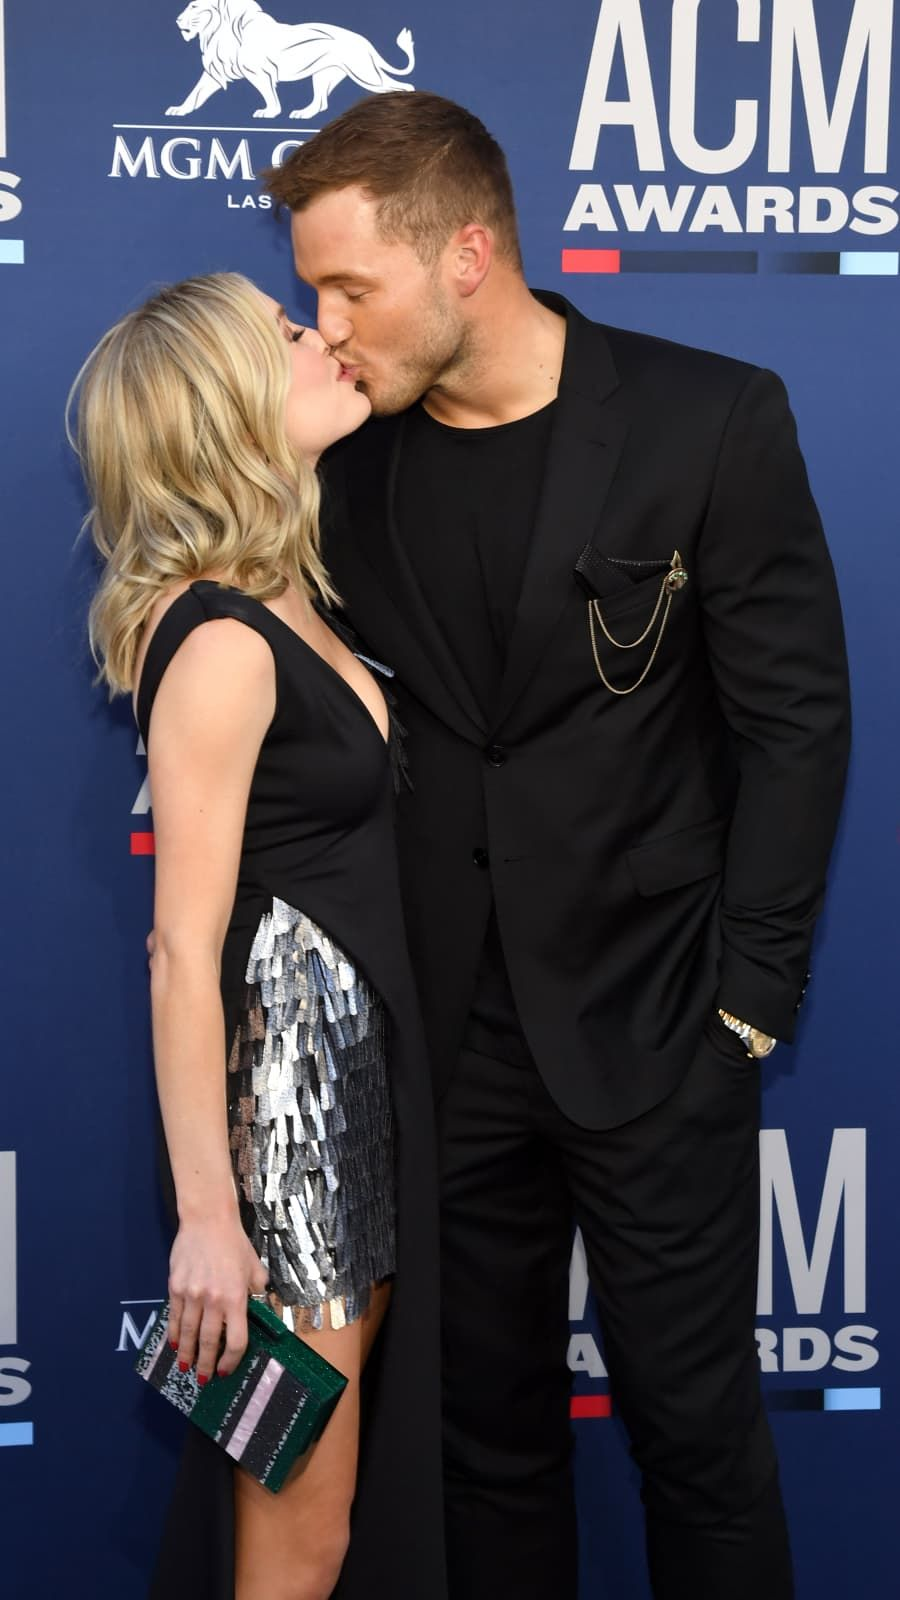 Pin By Kira Marlin On The Cutest Of Cassie And Colton In 2020 Colton Underwood How To Look Handsome American Country Music Awards